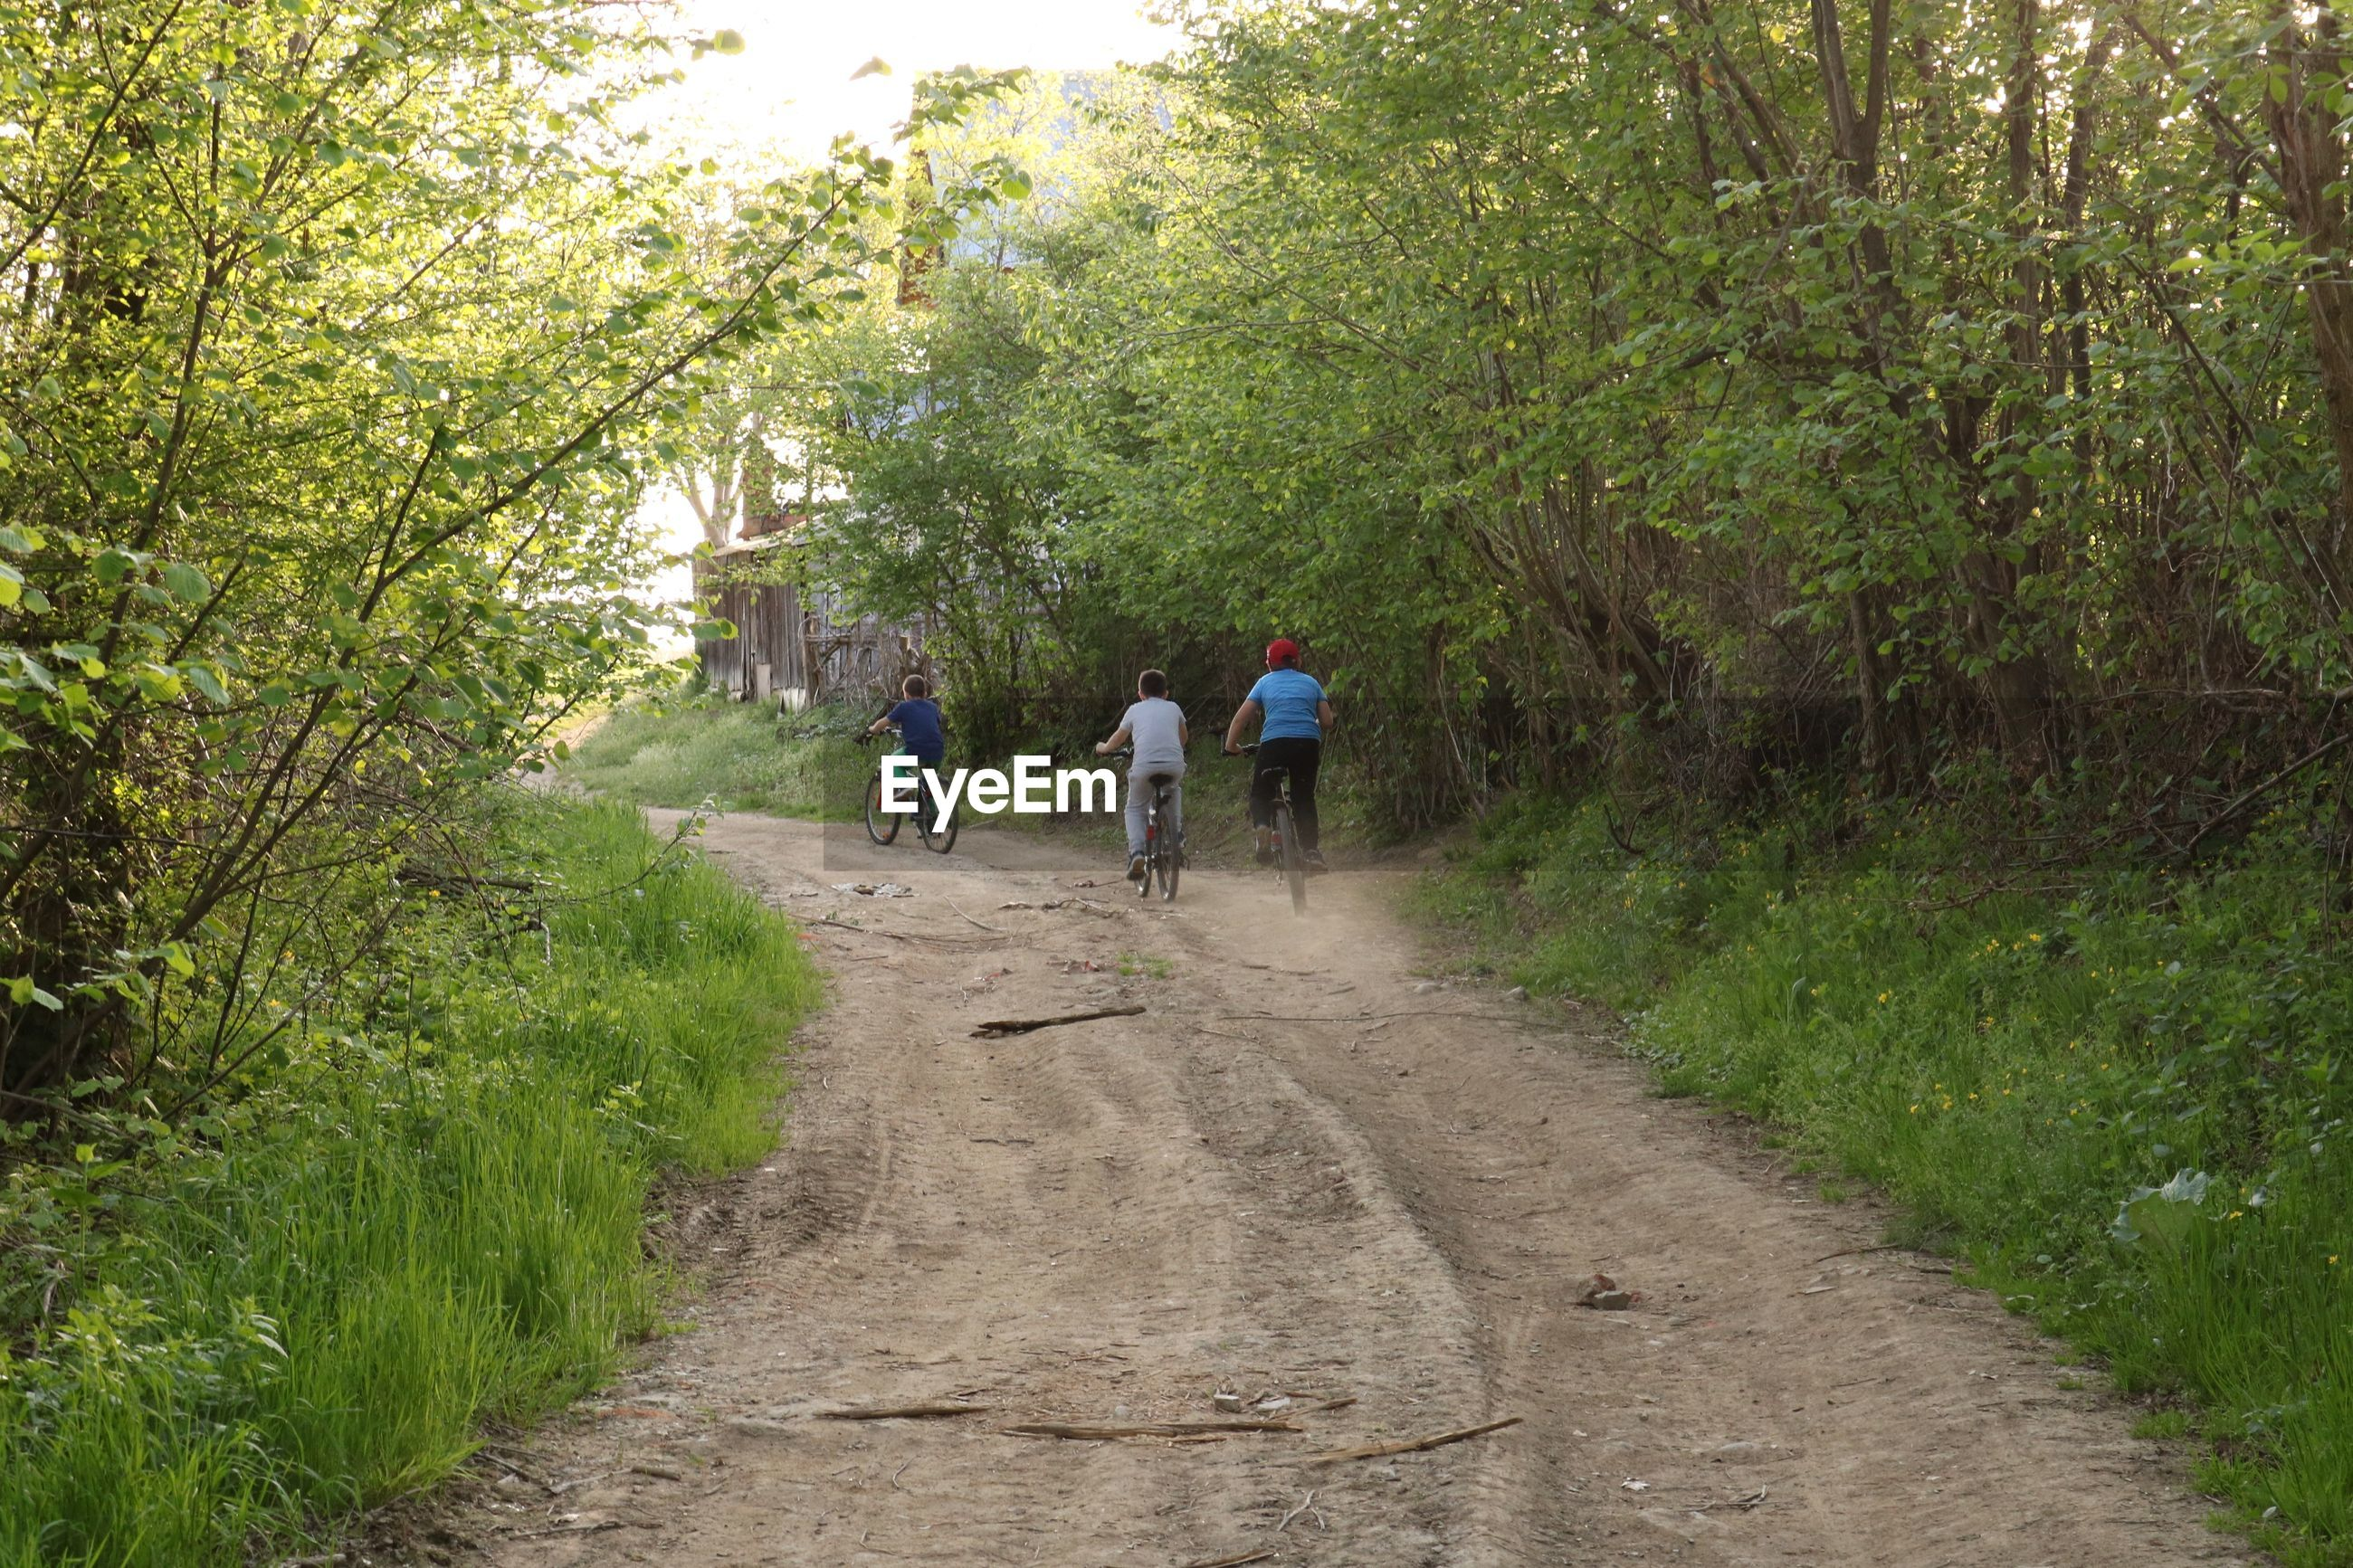 Rear view of friends riding bicycle on dirt road amidst trees